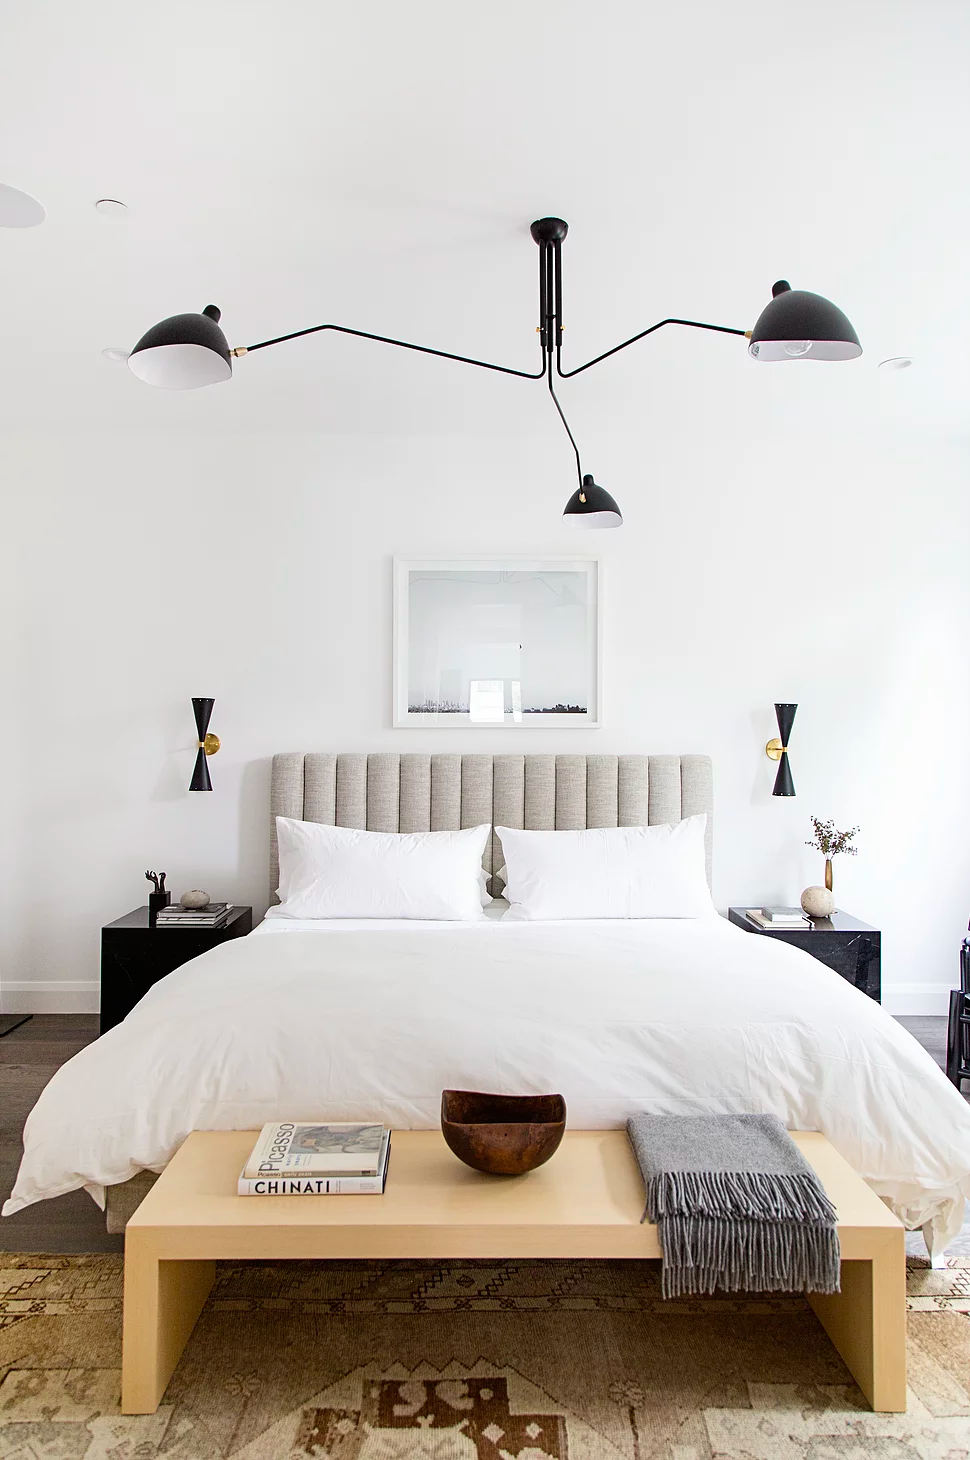 How to achieve timeless style on apartment home interiordesign bedroom decor also pin by amanda peterson  small space rh pinterest